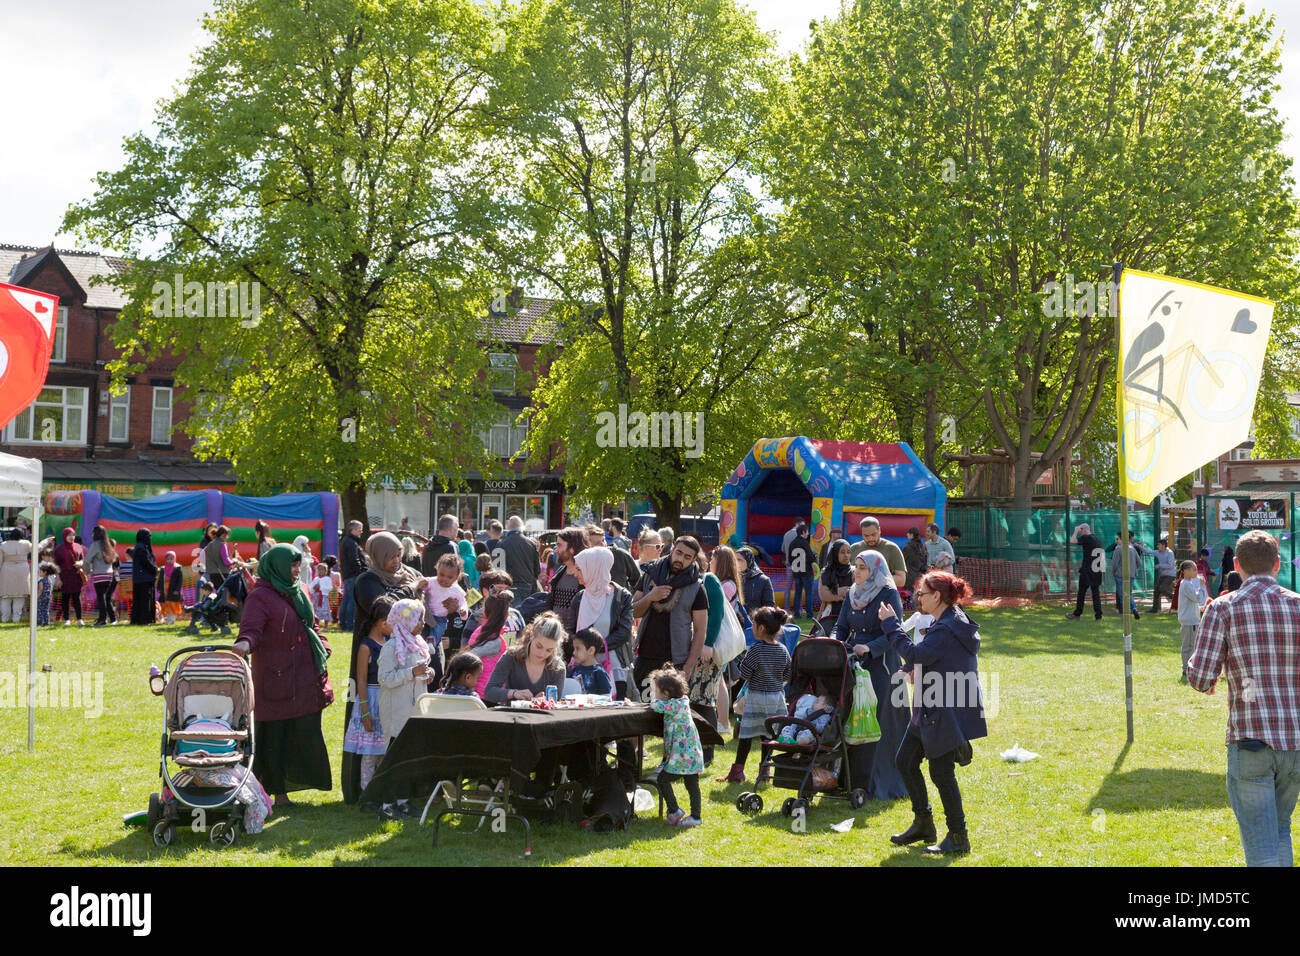 People at the Celebrate Festival, Whalley Range, Greater Manchester - Stock Image